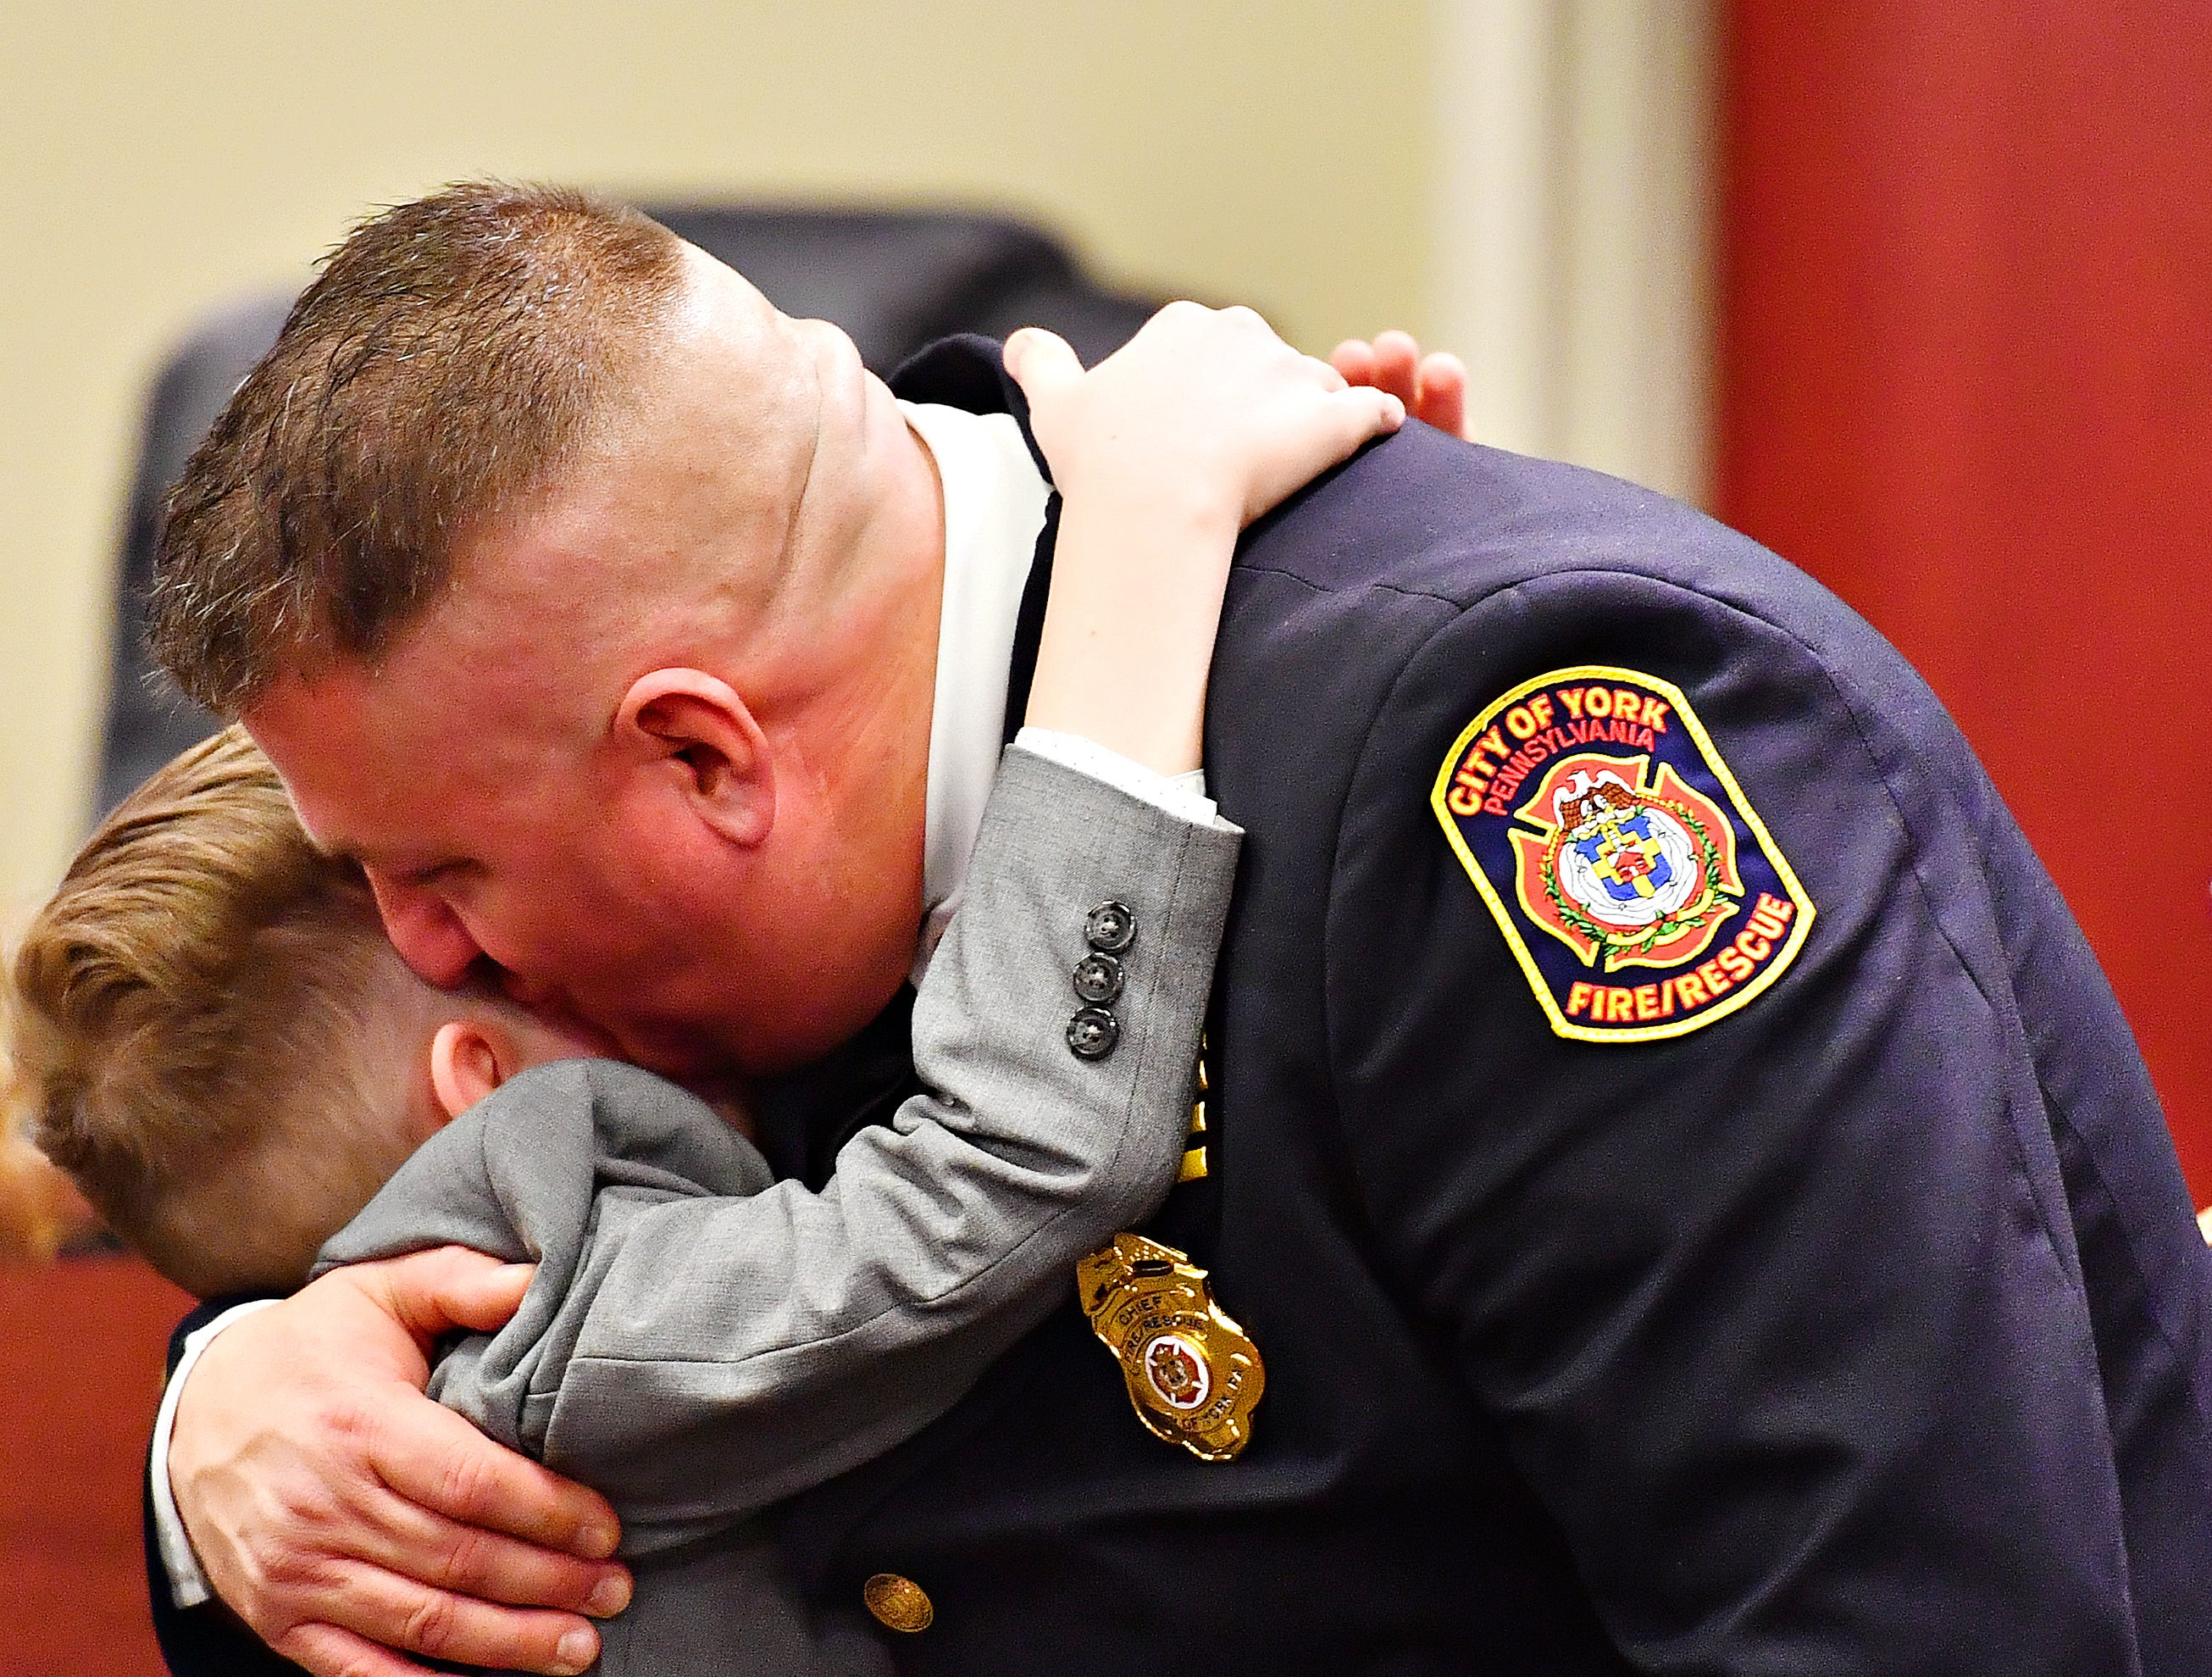 York City Fire Chief Chad Deardorff is embraced by his son, Adam, 9, during the new chief's swearing-in ceremony at York City Hall in York City, Friday, March 8, 2019. Dawn J. Sagert photo